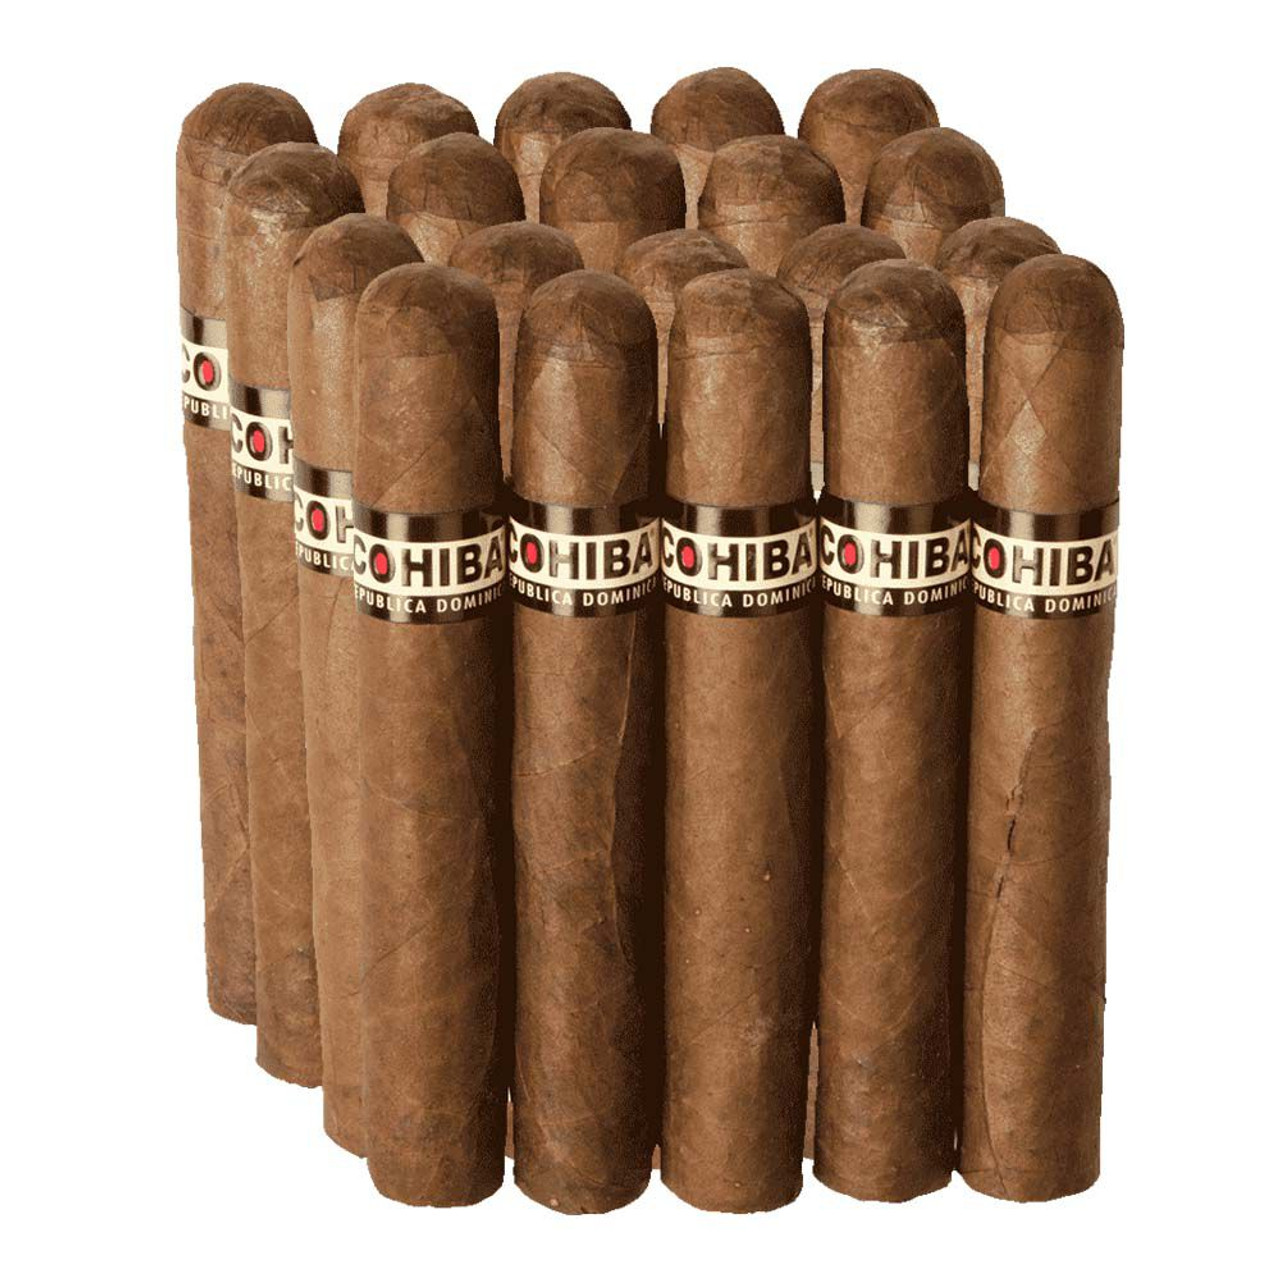 Cohiba Dominican Robusto Cigars - 5.0 x 49 (Pack of 10)